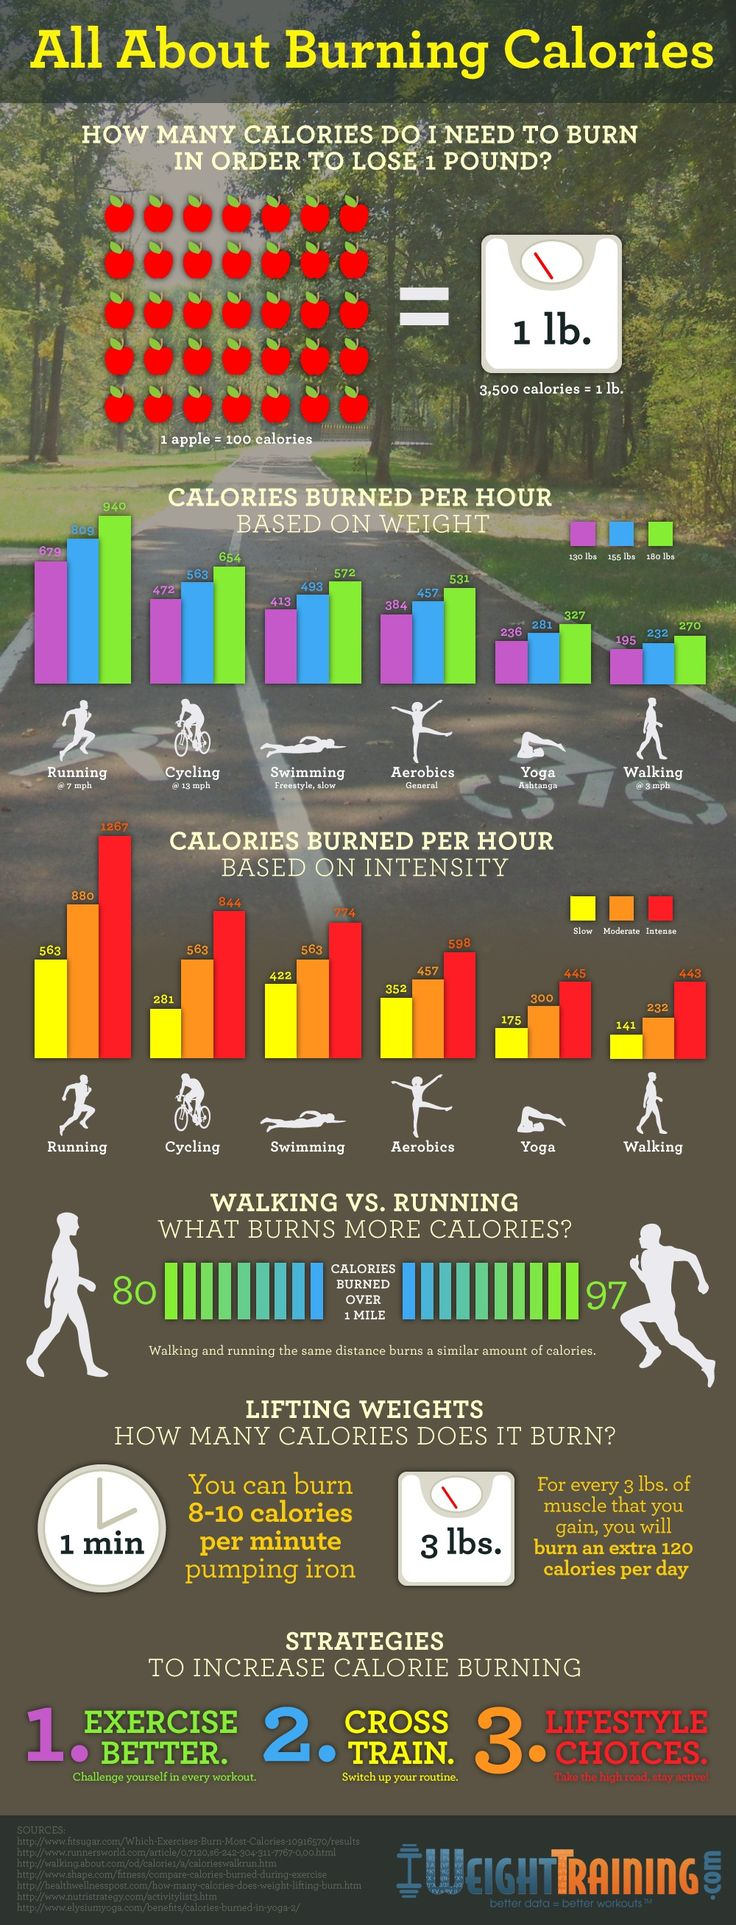 All About Burning Calories Infographic diet, nutrition, exercise, workout, fitness, health fastsimplefit